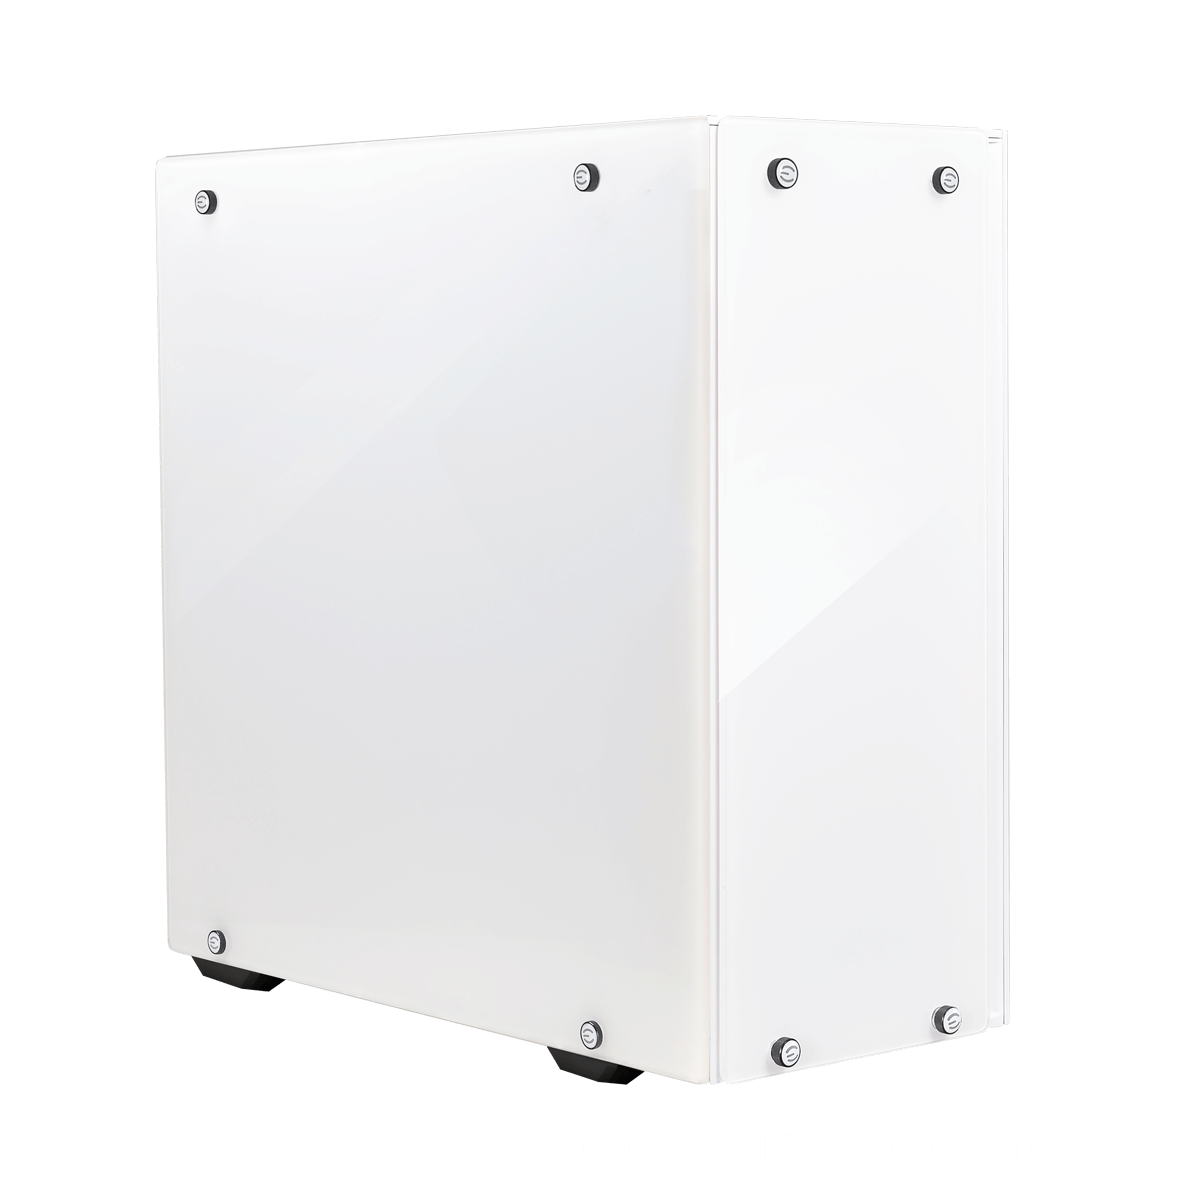 EVGA DG-75 Midi Tower Chassis with Tempered Glass - Alpine White - 150-B0-2020-KR - Core Components by Evga The Chelsea Gamer